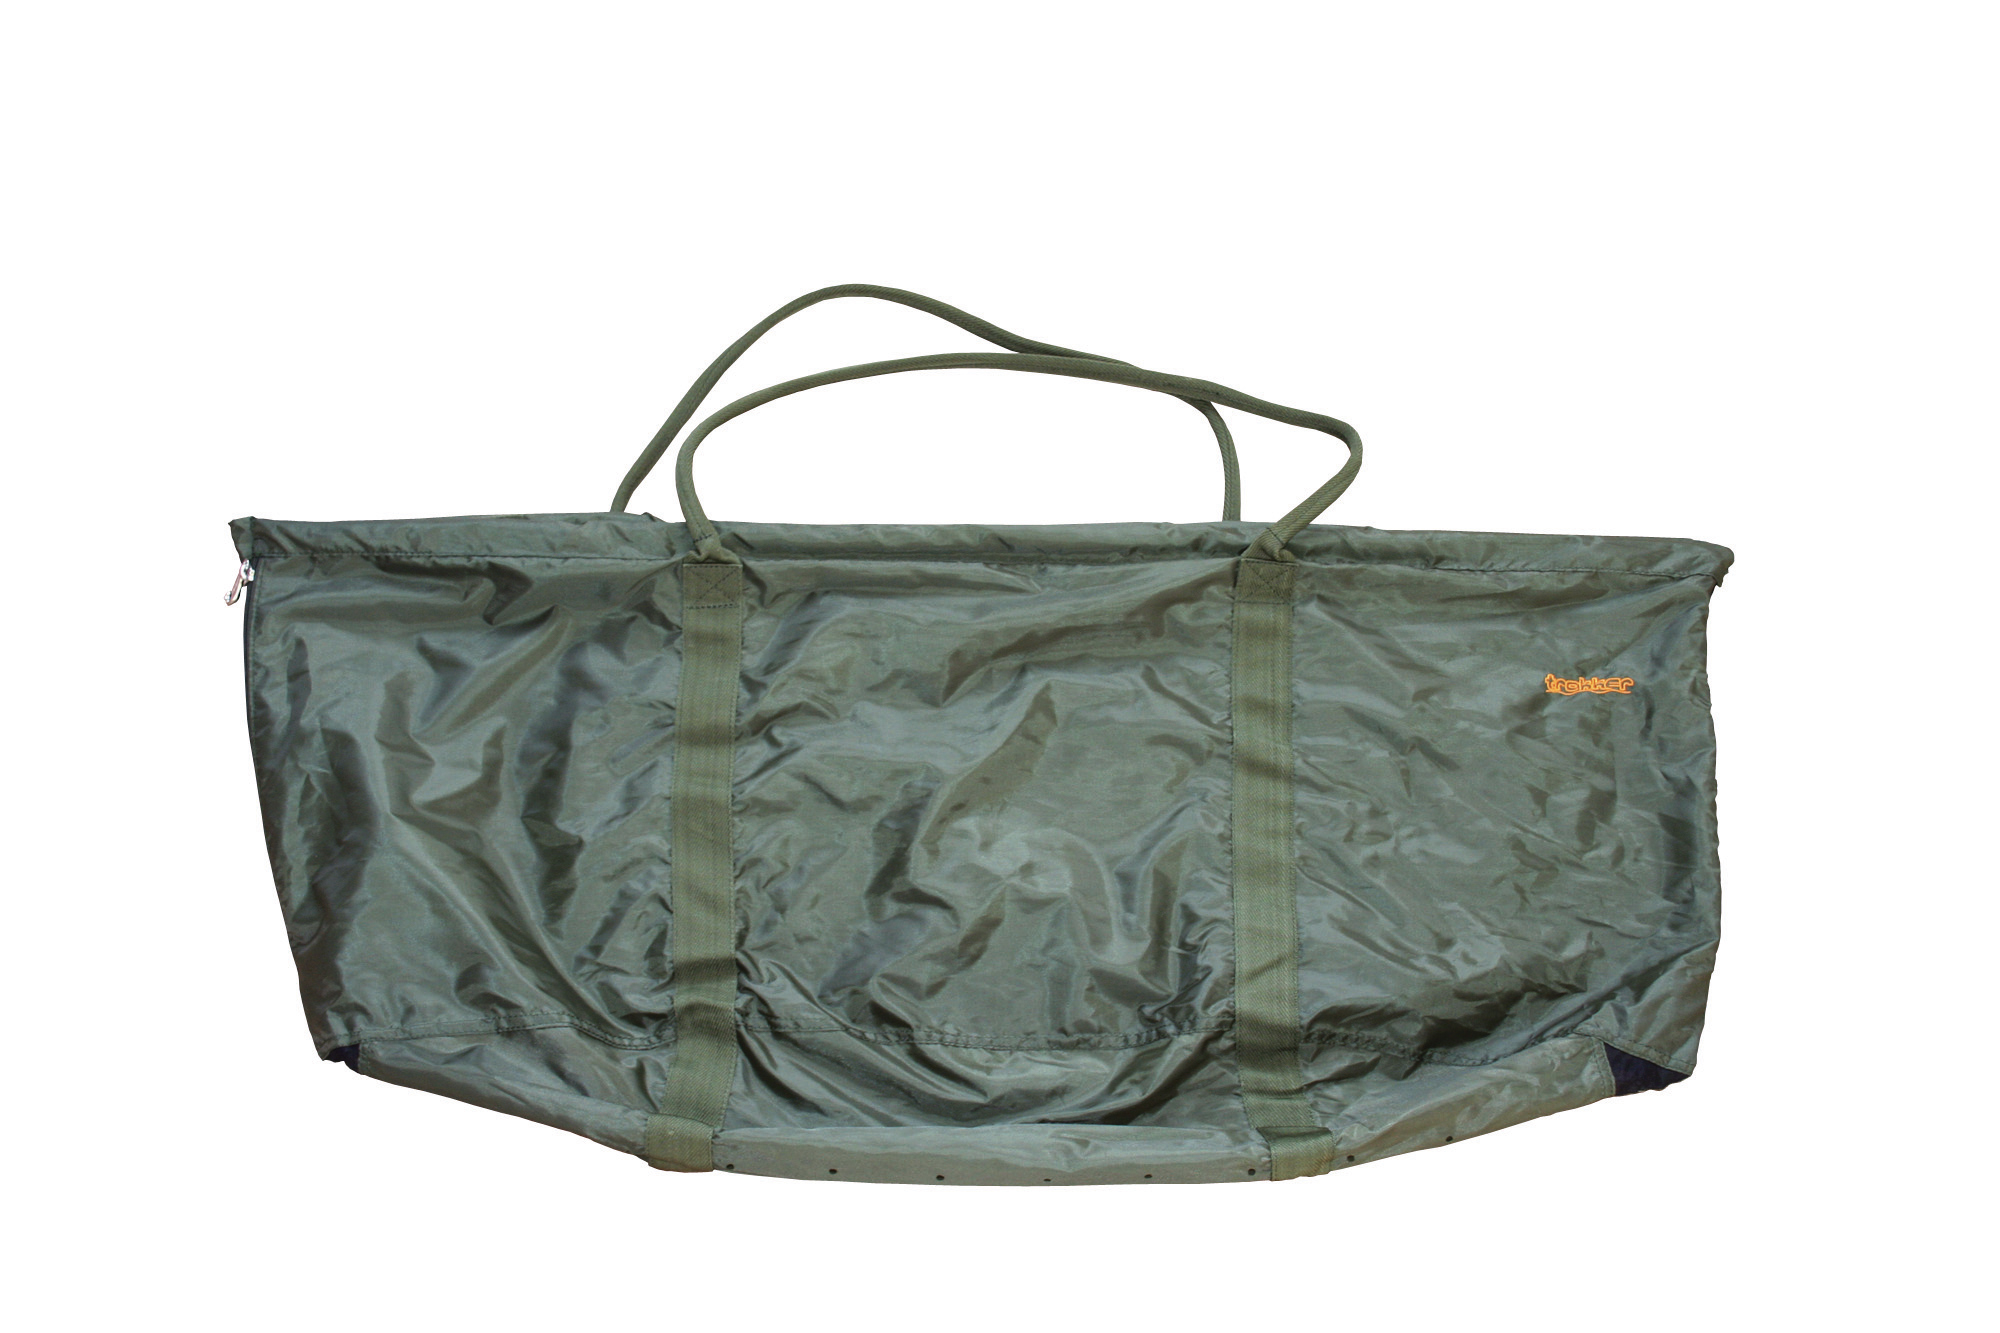 Trakker Vážící podložka  Safety Weigh Sling